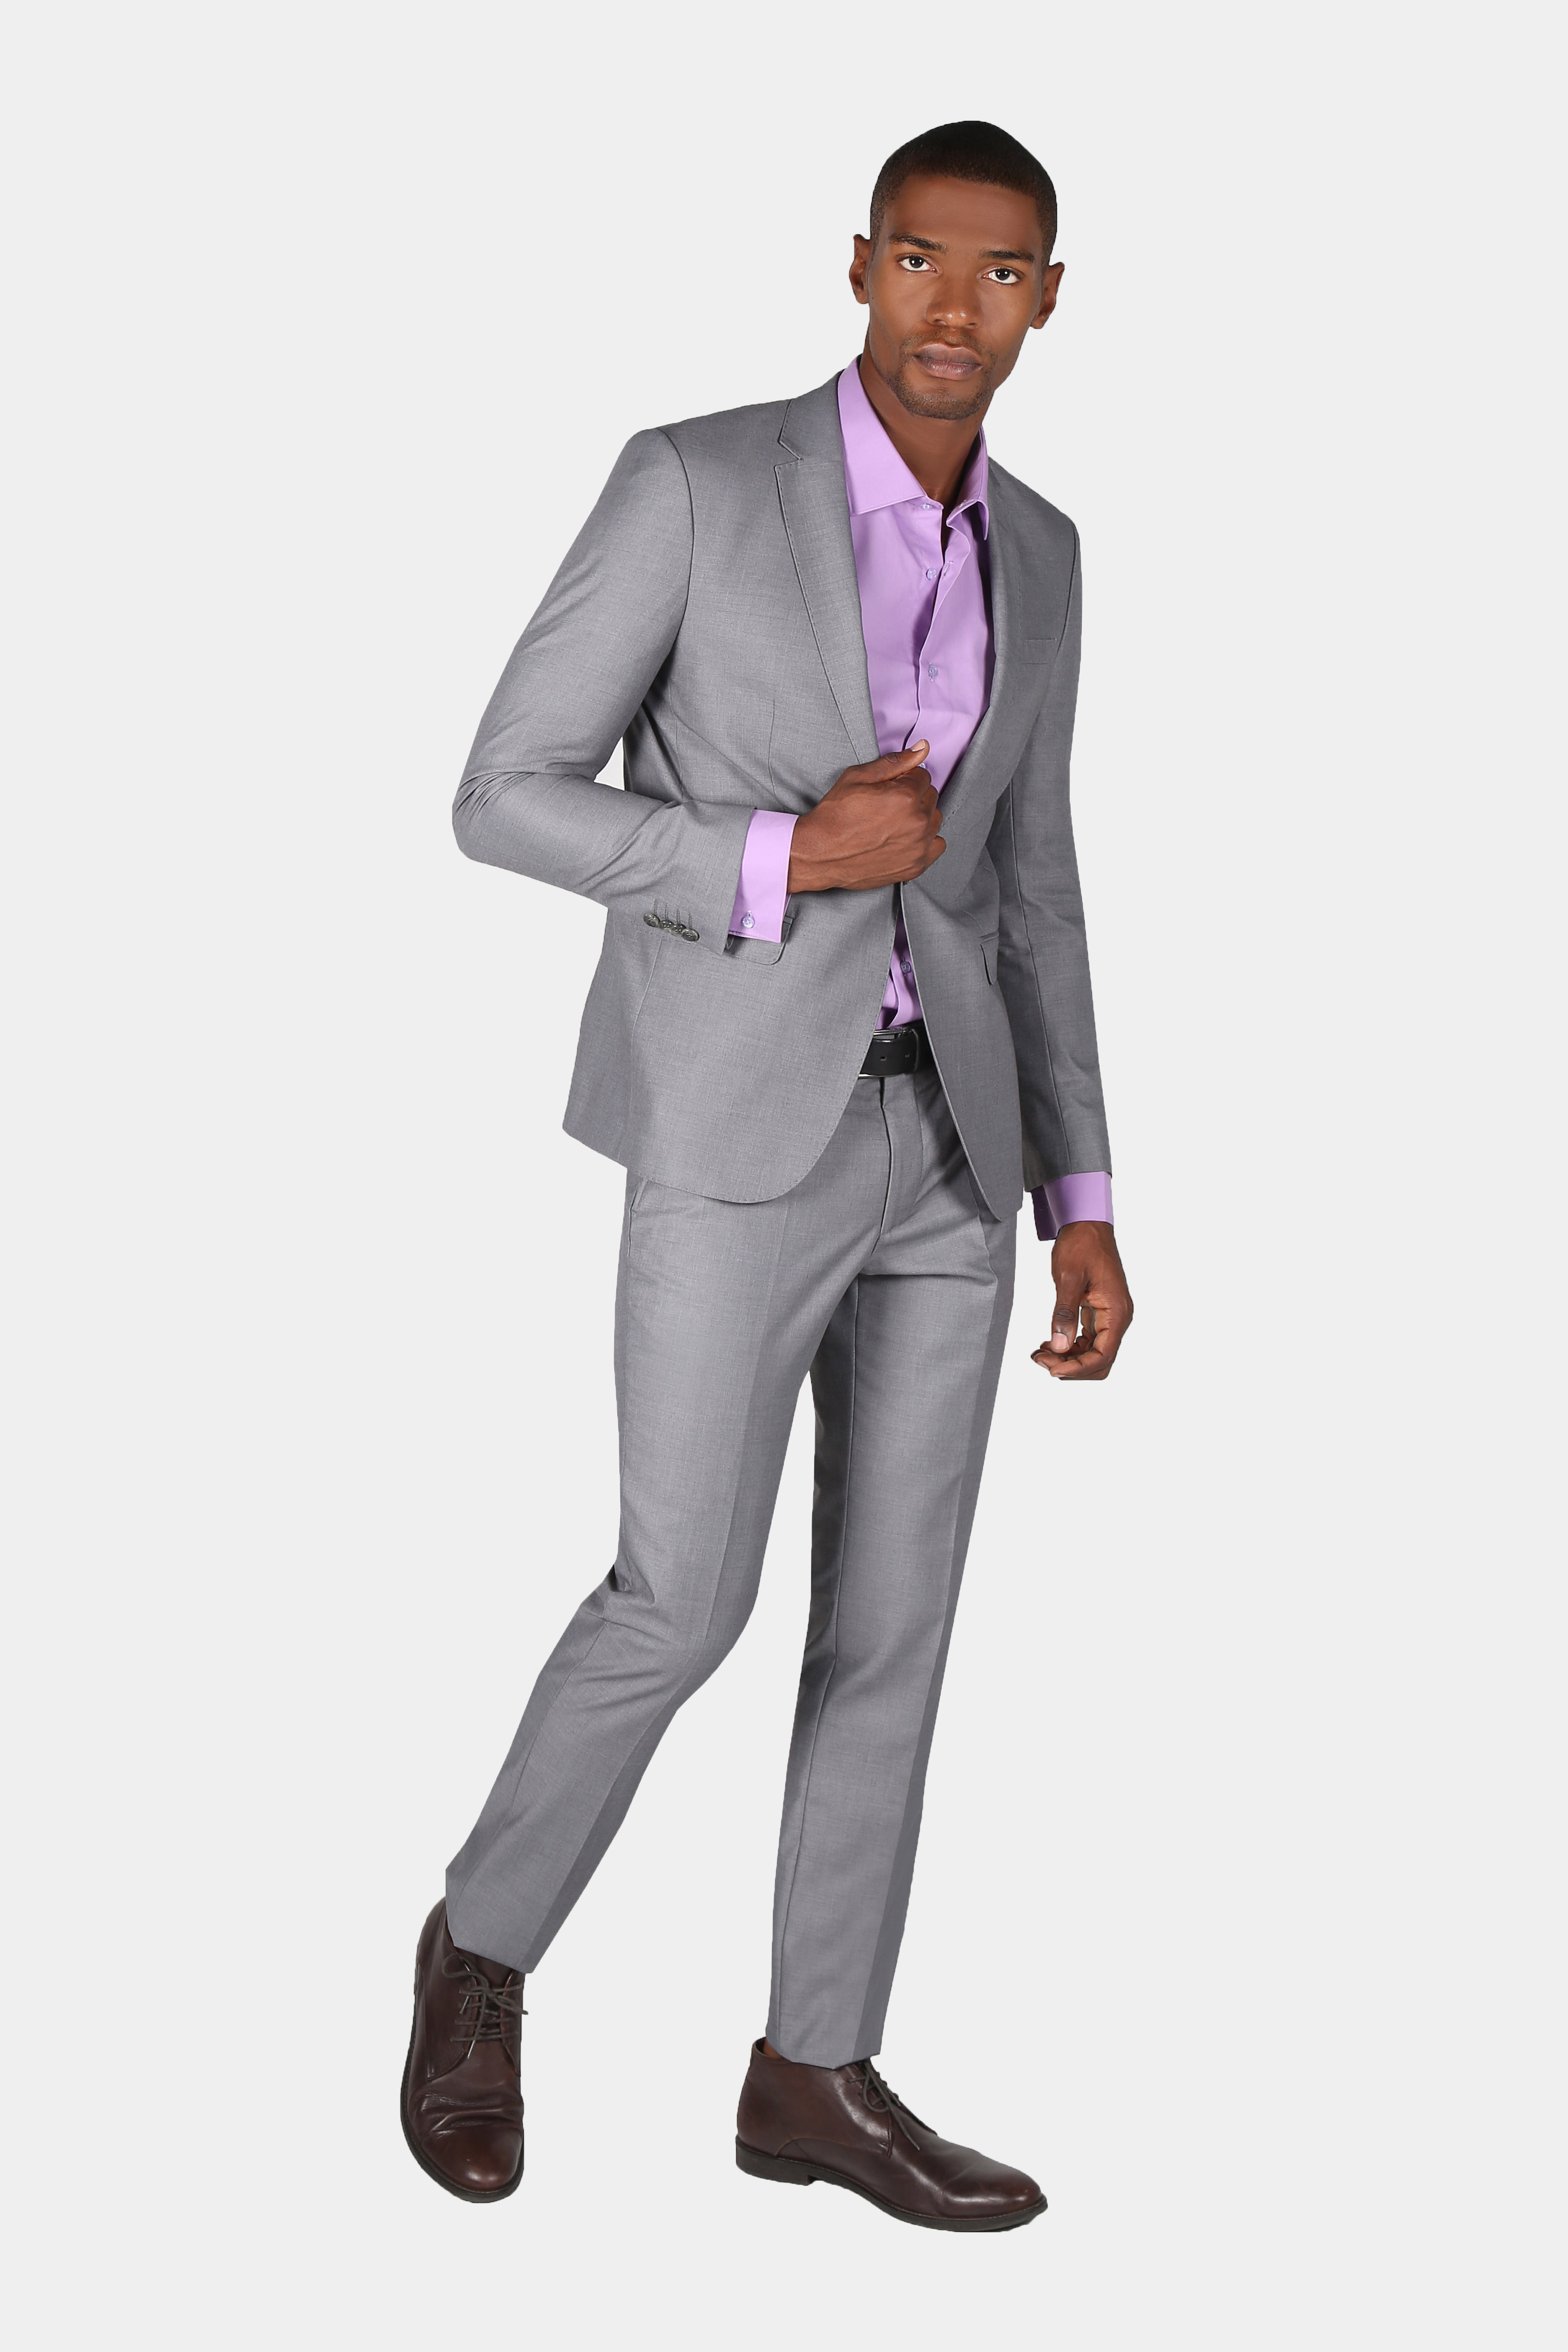 light shades ties floral like week print the printed color gray with silk dress staple suit blue and tie wool outfit office bold a of